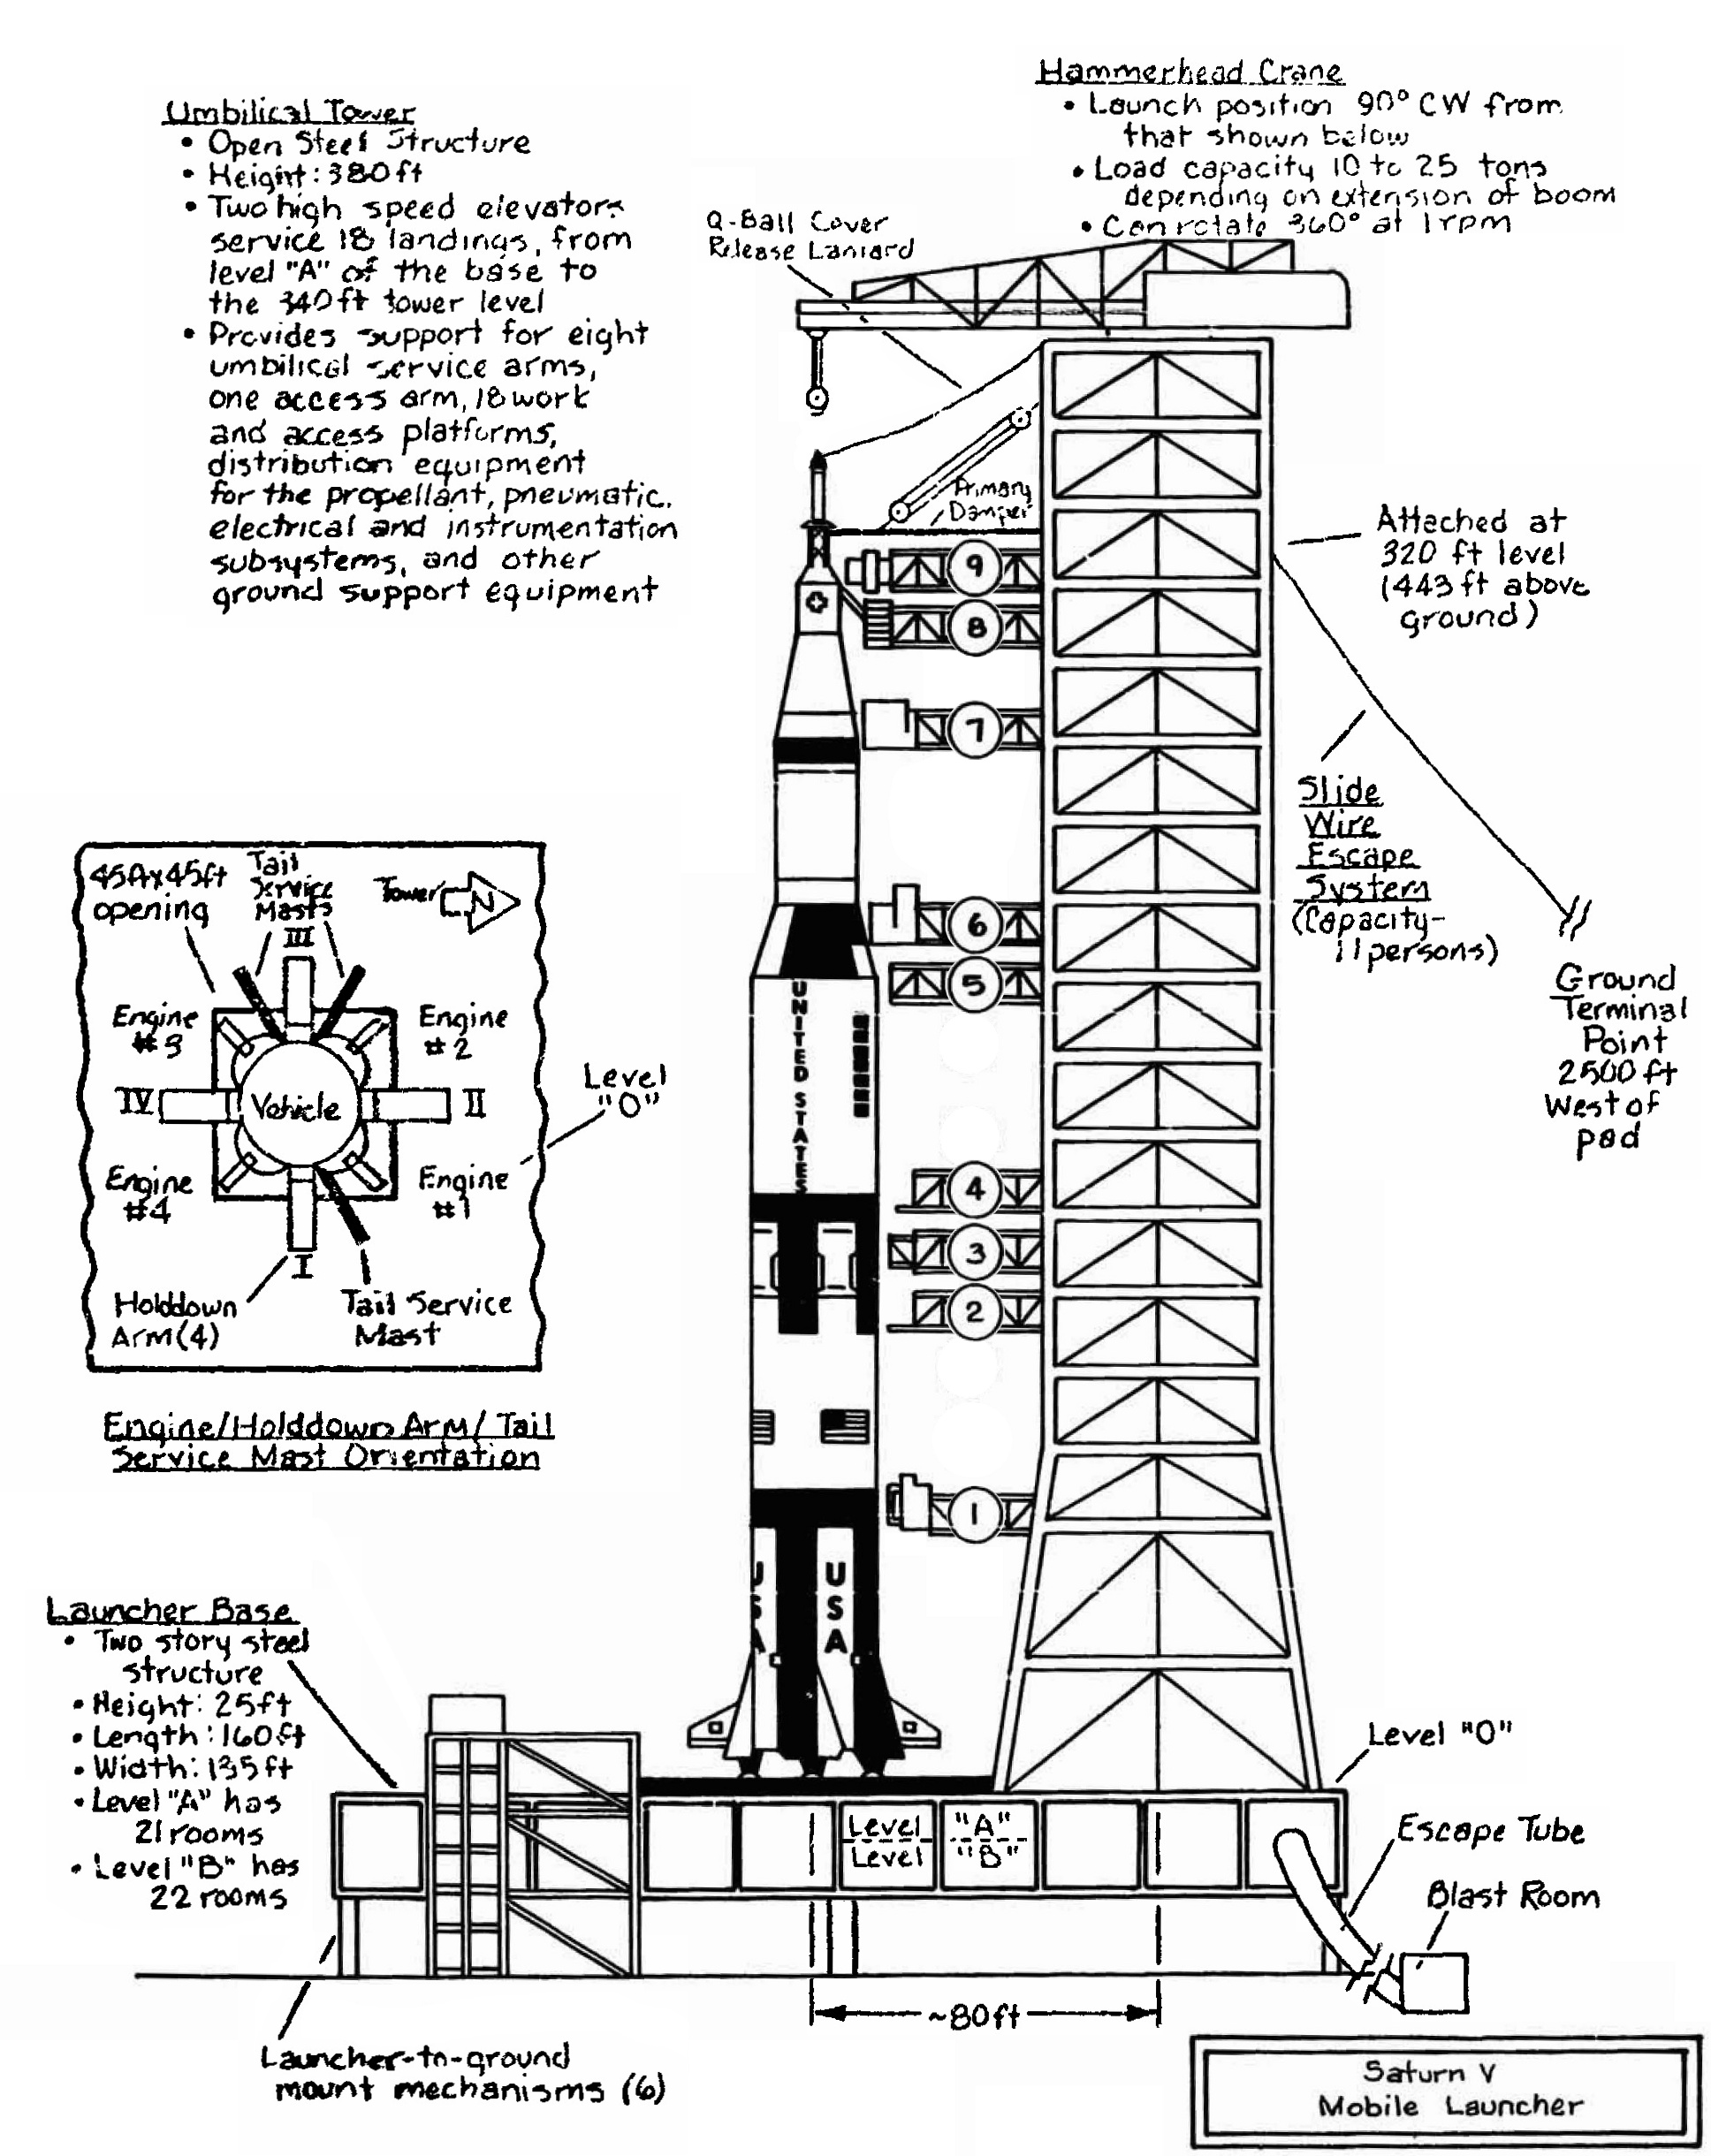 Launch Umbilical Tower Lut Mobile Launcher